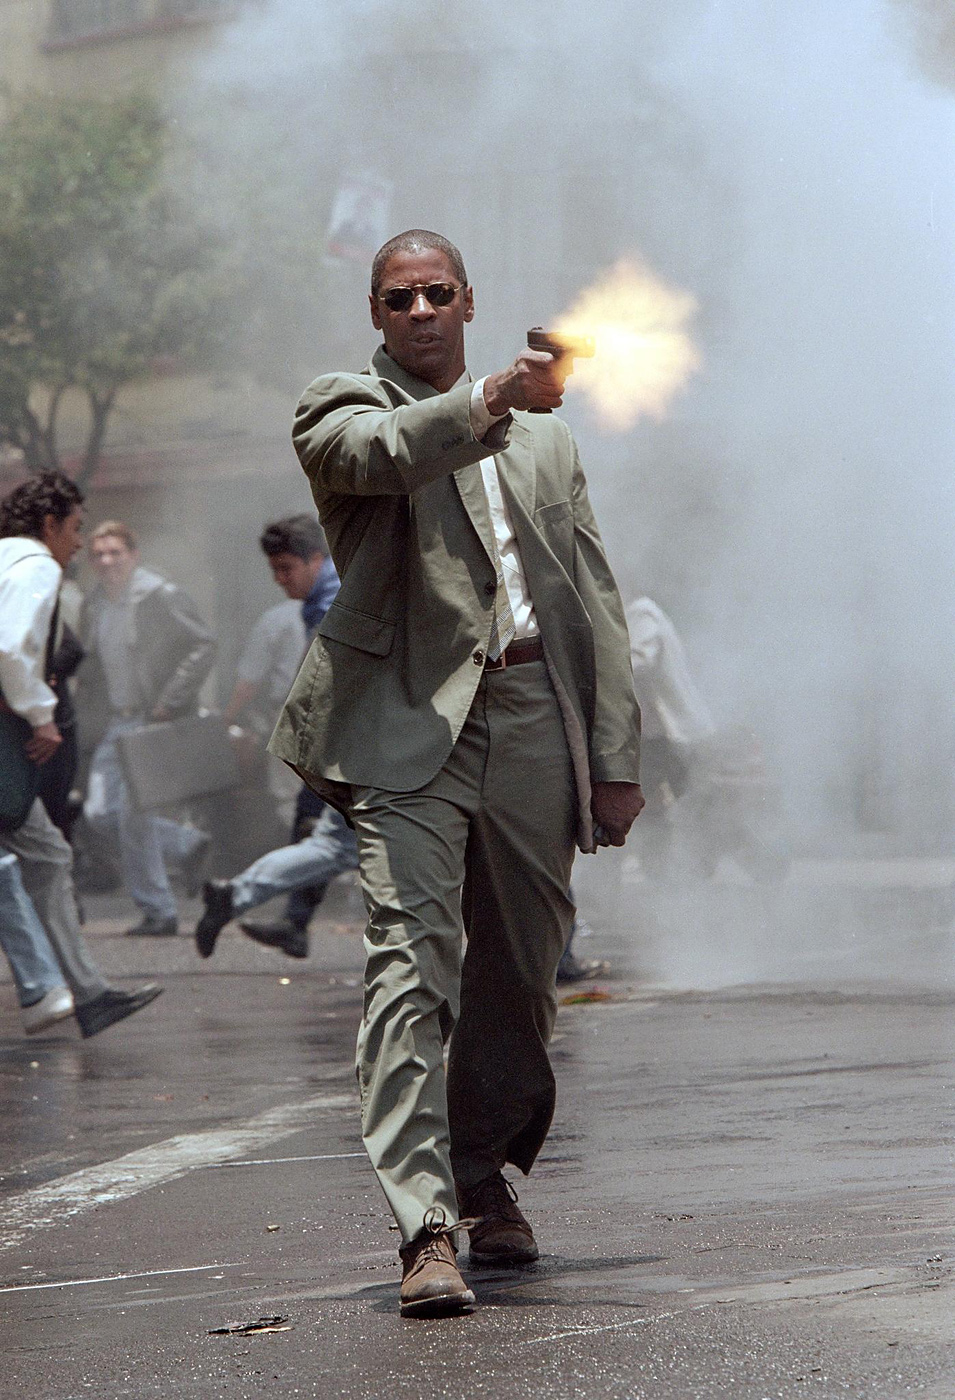 Man on Fire (2004) was an excellent movie. Don't let anyone tell you otherwise.